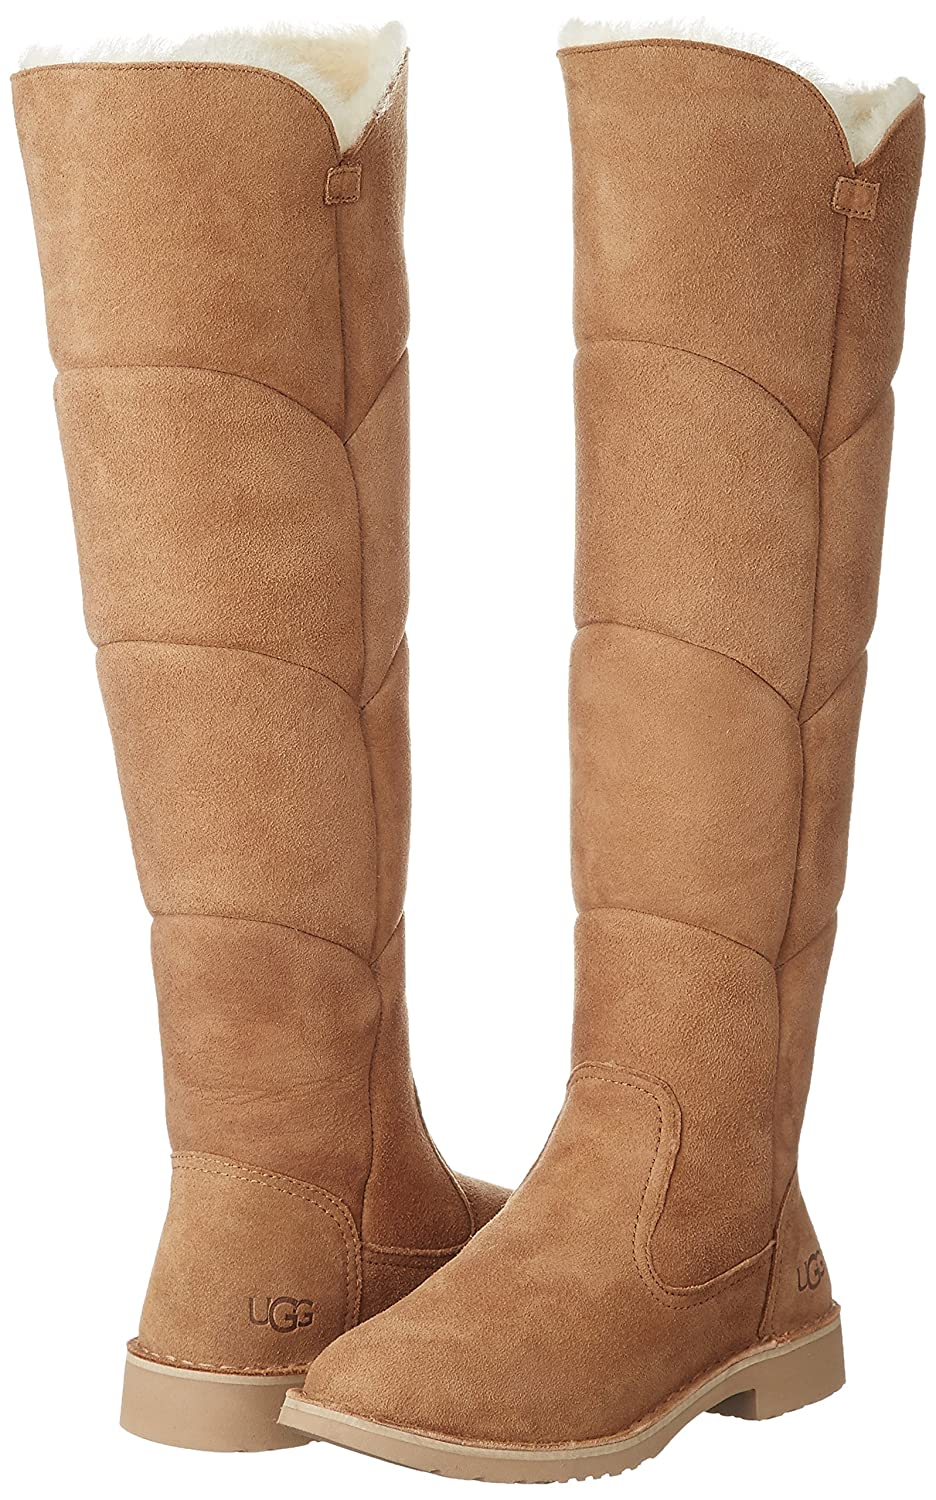 : UGG Women's Sibley Boot,Chestnut,US 10.5 M: Shoes